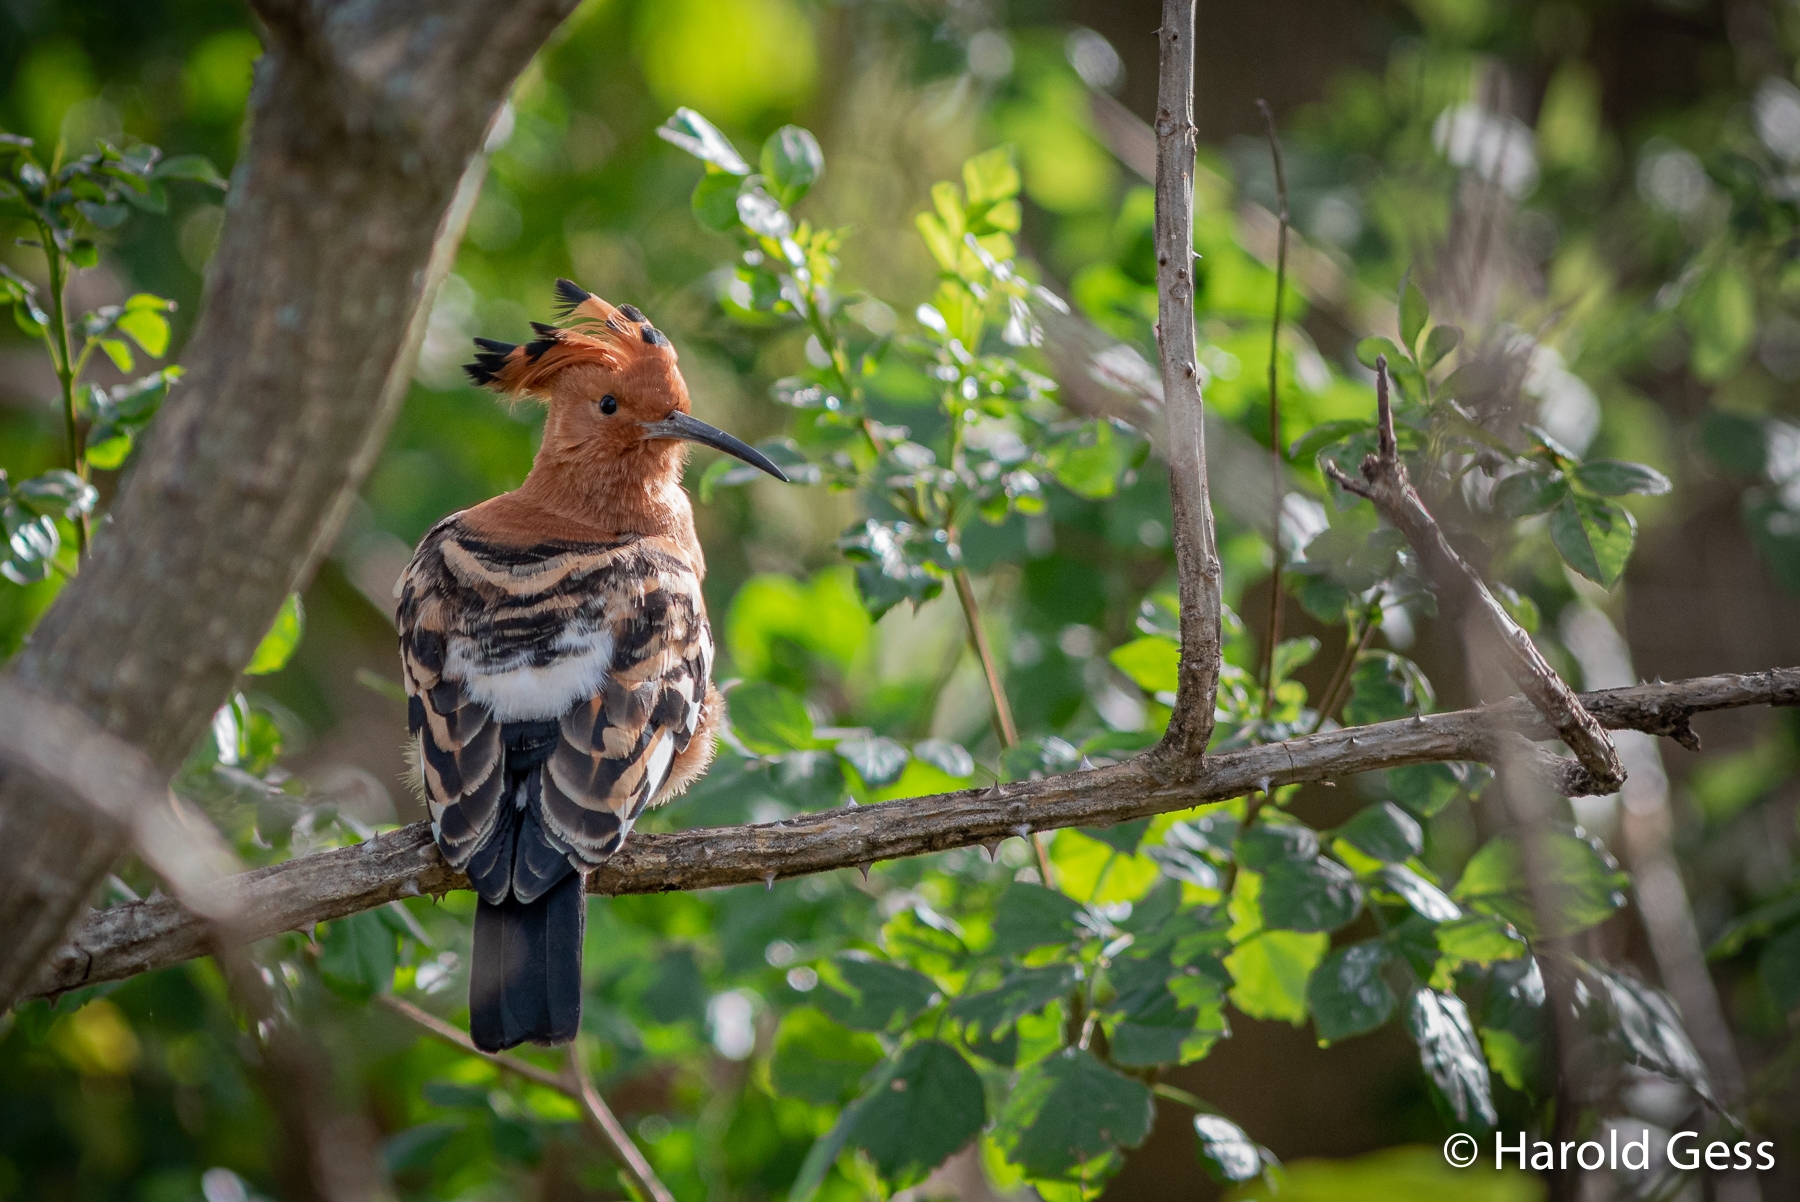 African Hoopoe, Upupa africana, Grahamstown, Eastern Cape, August 2019.